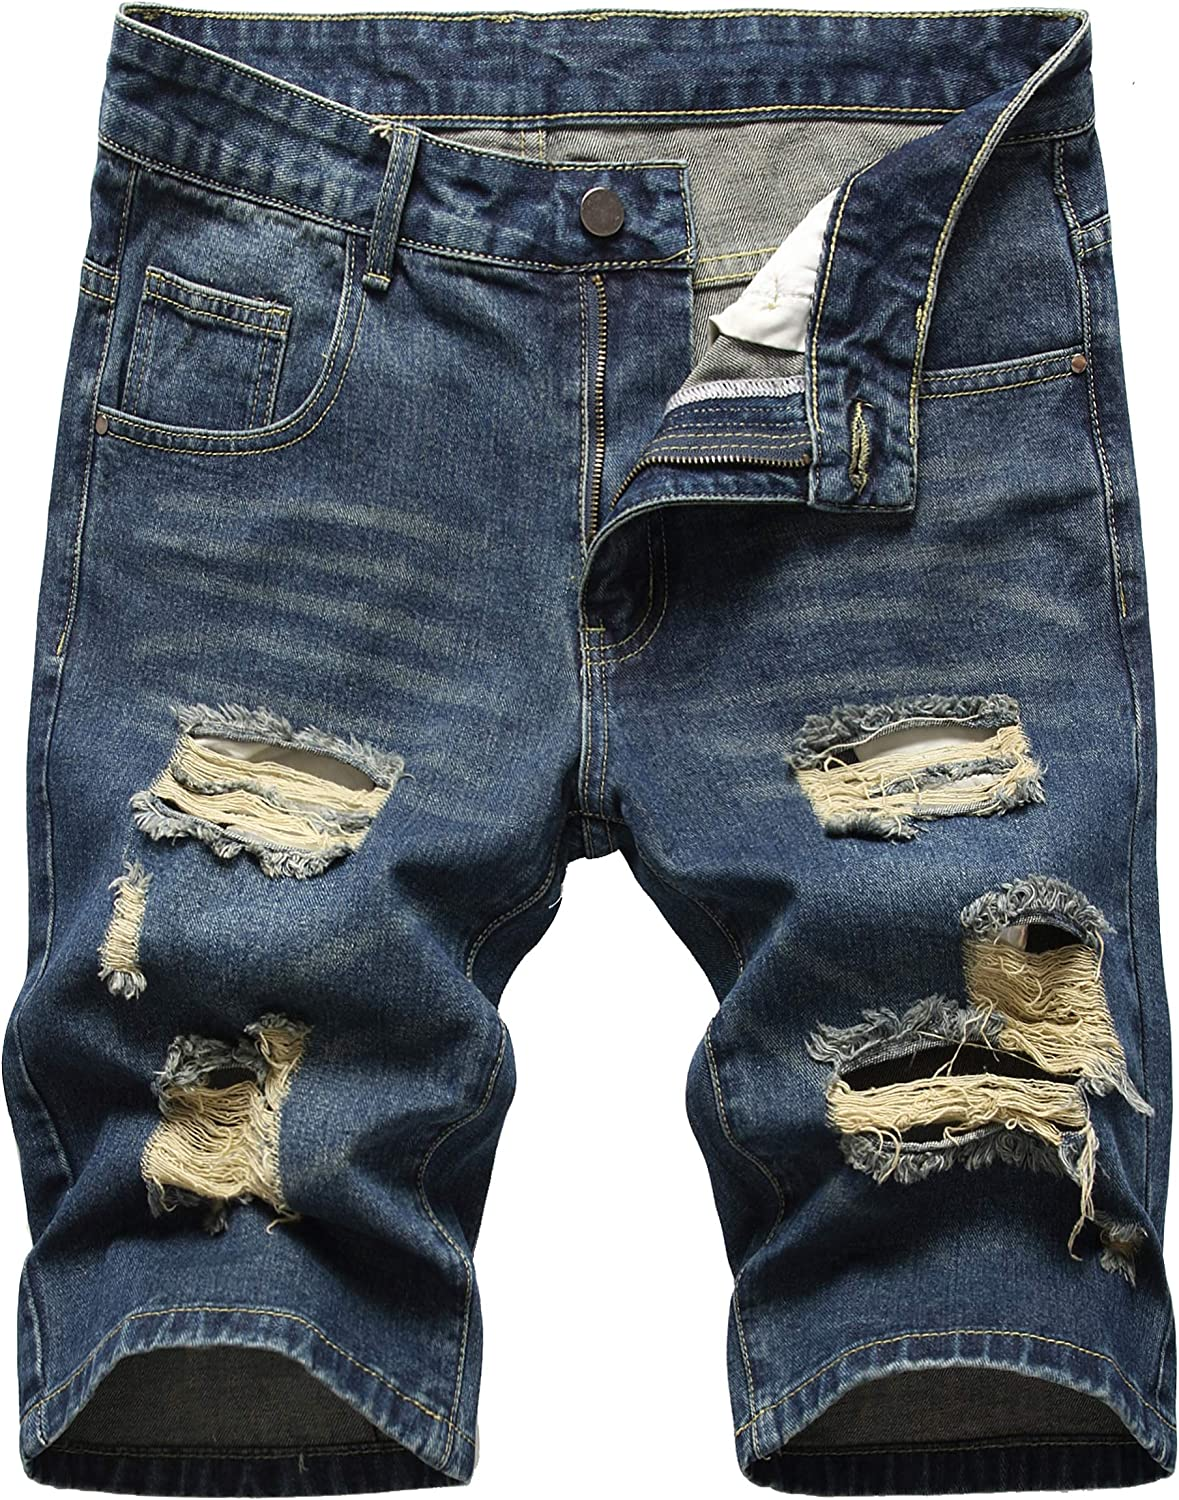 Men's Ripped Denim Shorts Classic Denver Mall Jean Relaxed Five Pocket Free shipping New Fit